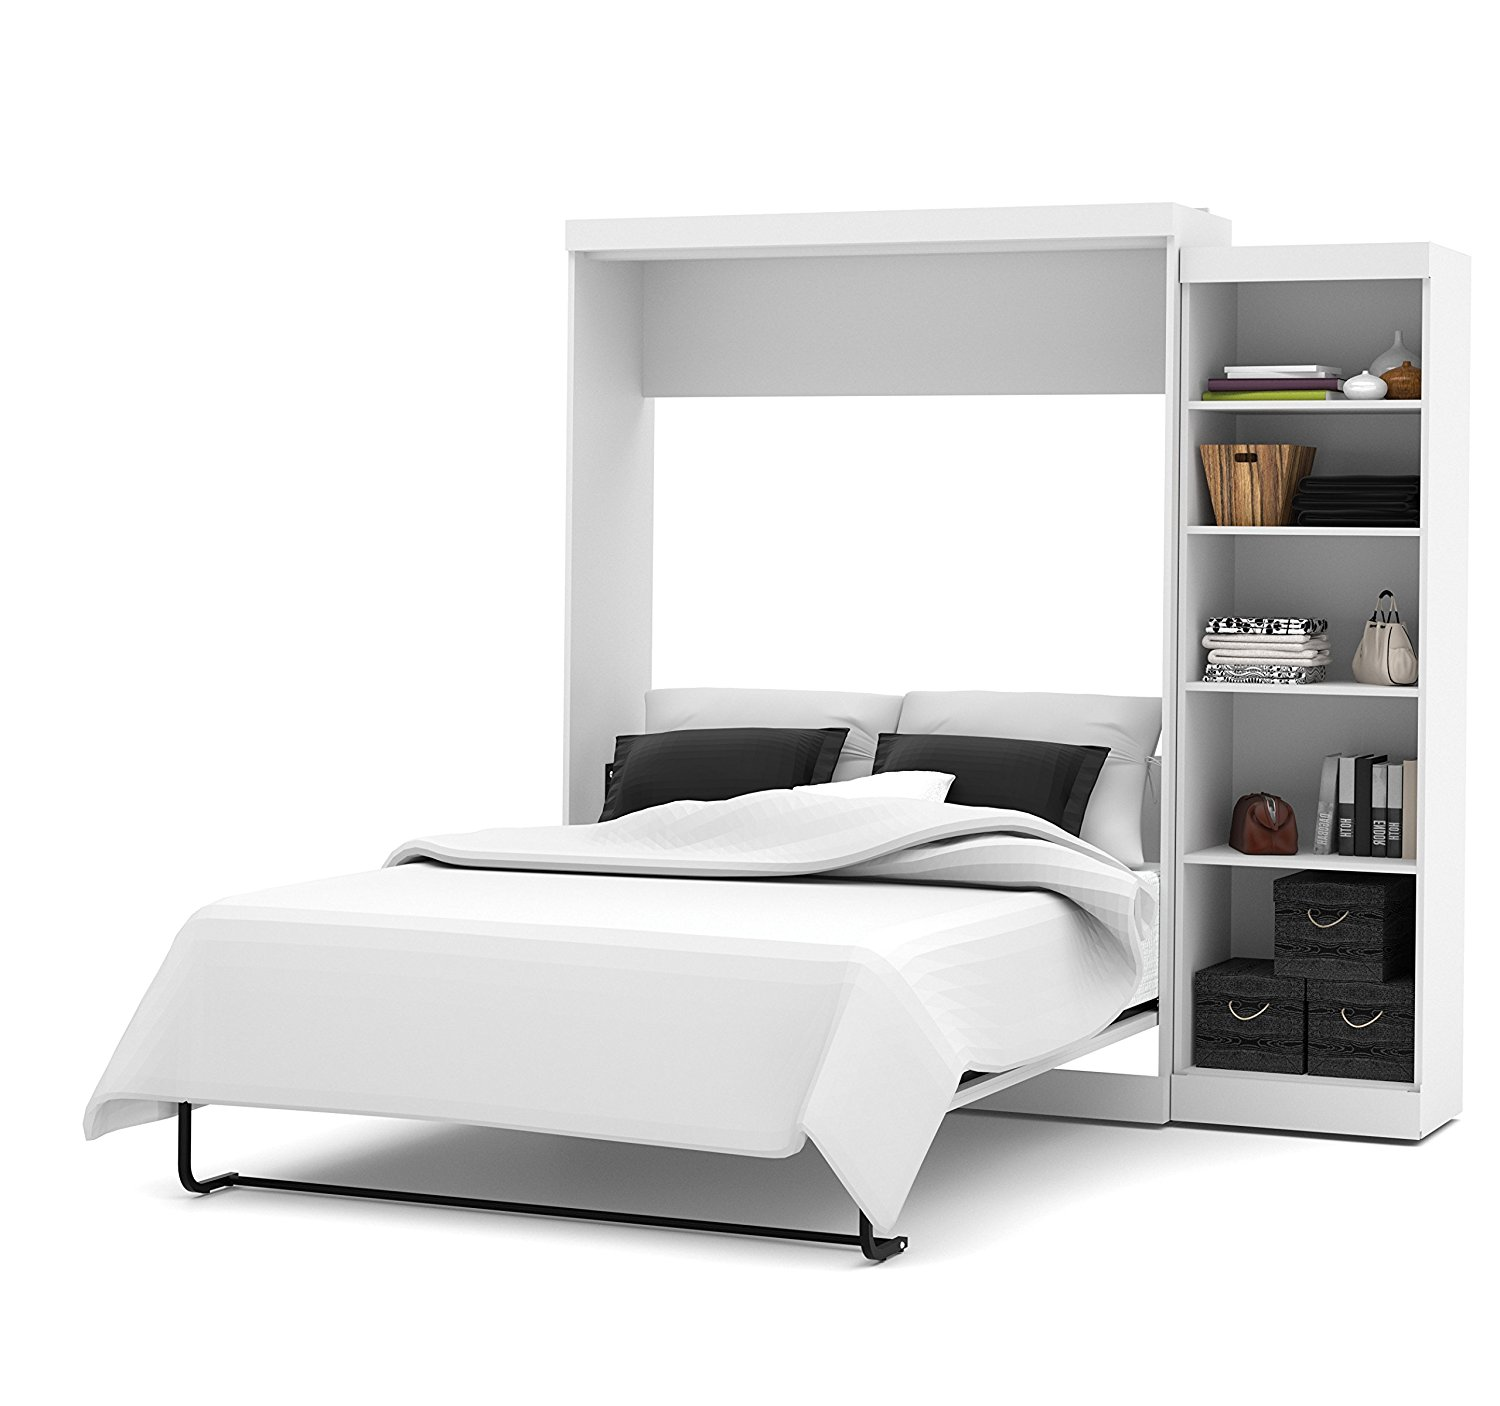 Attractive Bestar Wall Bed for Modern Bedroom Furniture Idea: Bestar Wall Bed | Wilding Wall Beds | Murphy Bed Units